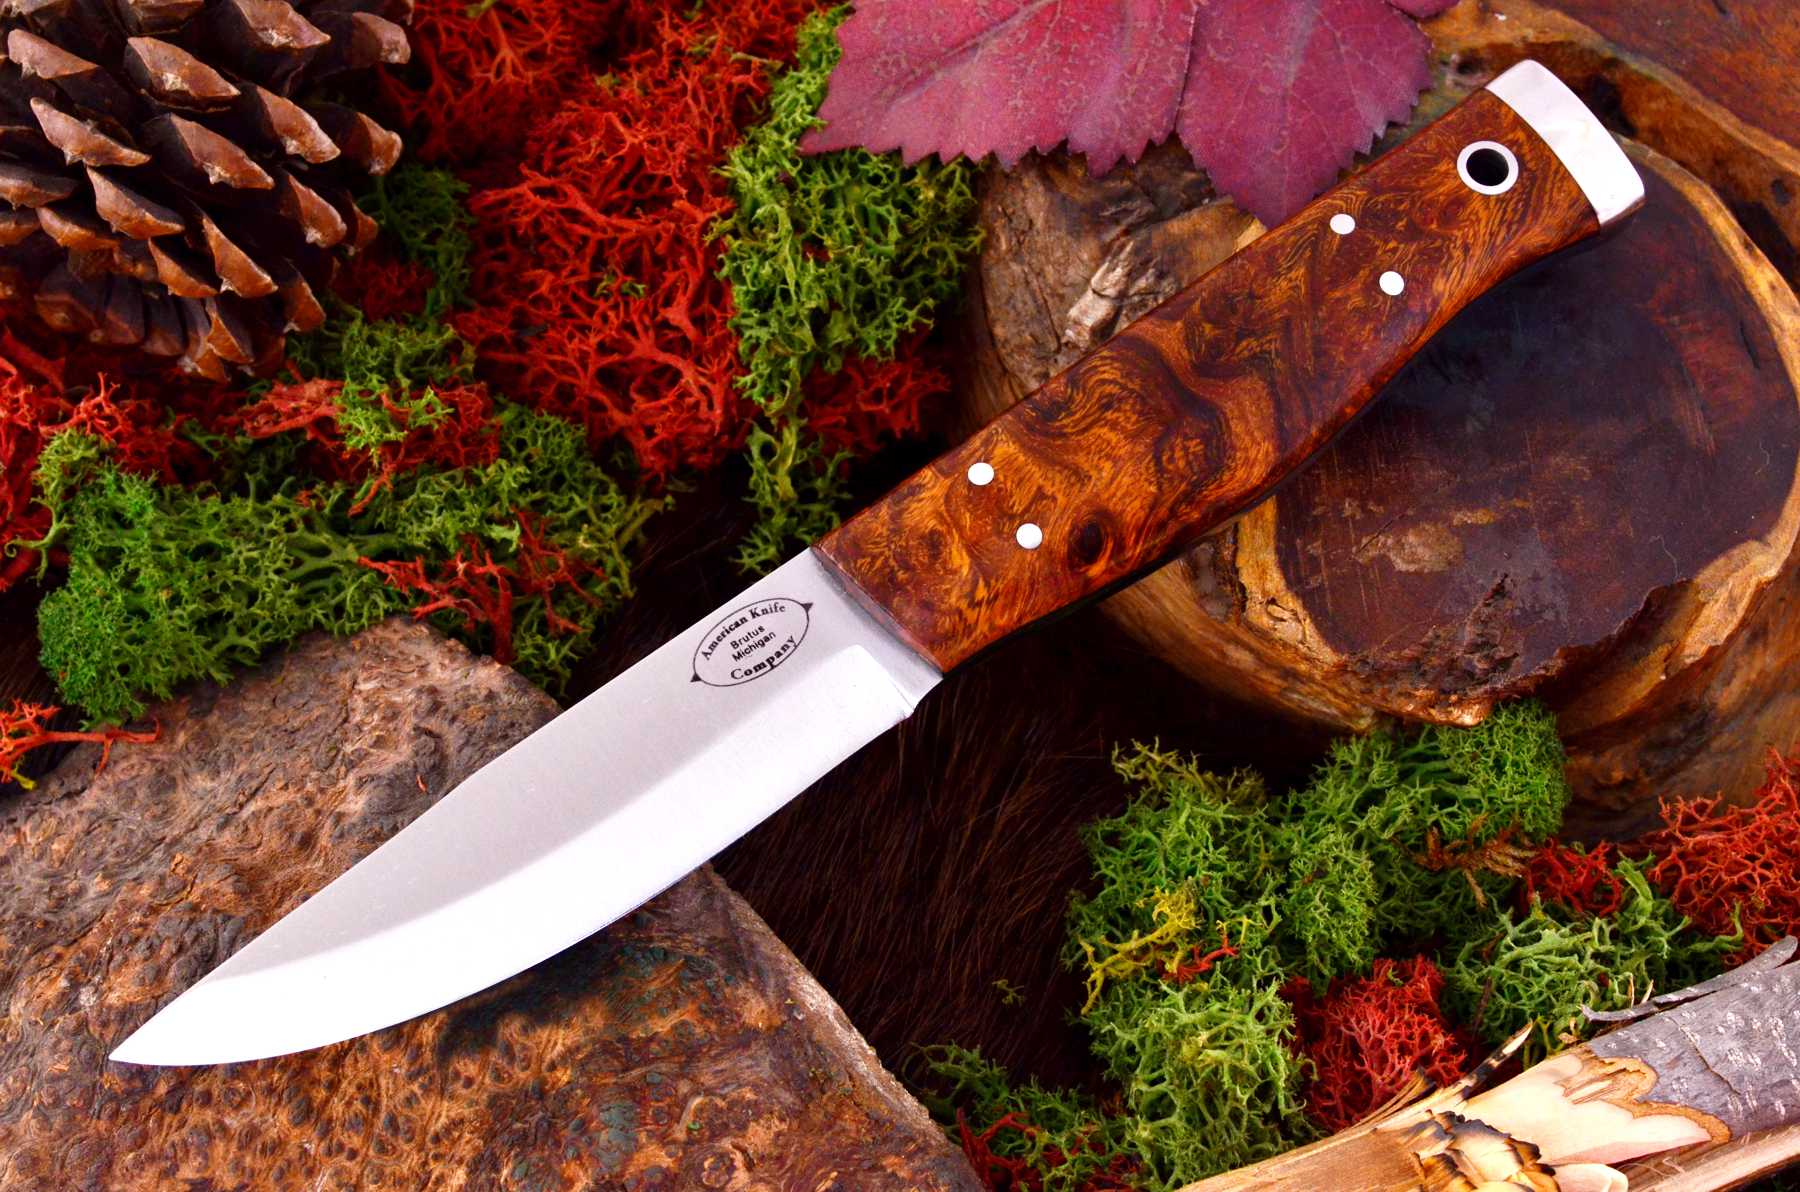 akc_forest_desert_ironwood_burl_black_liners_ksf_449_95